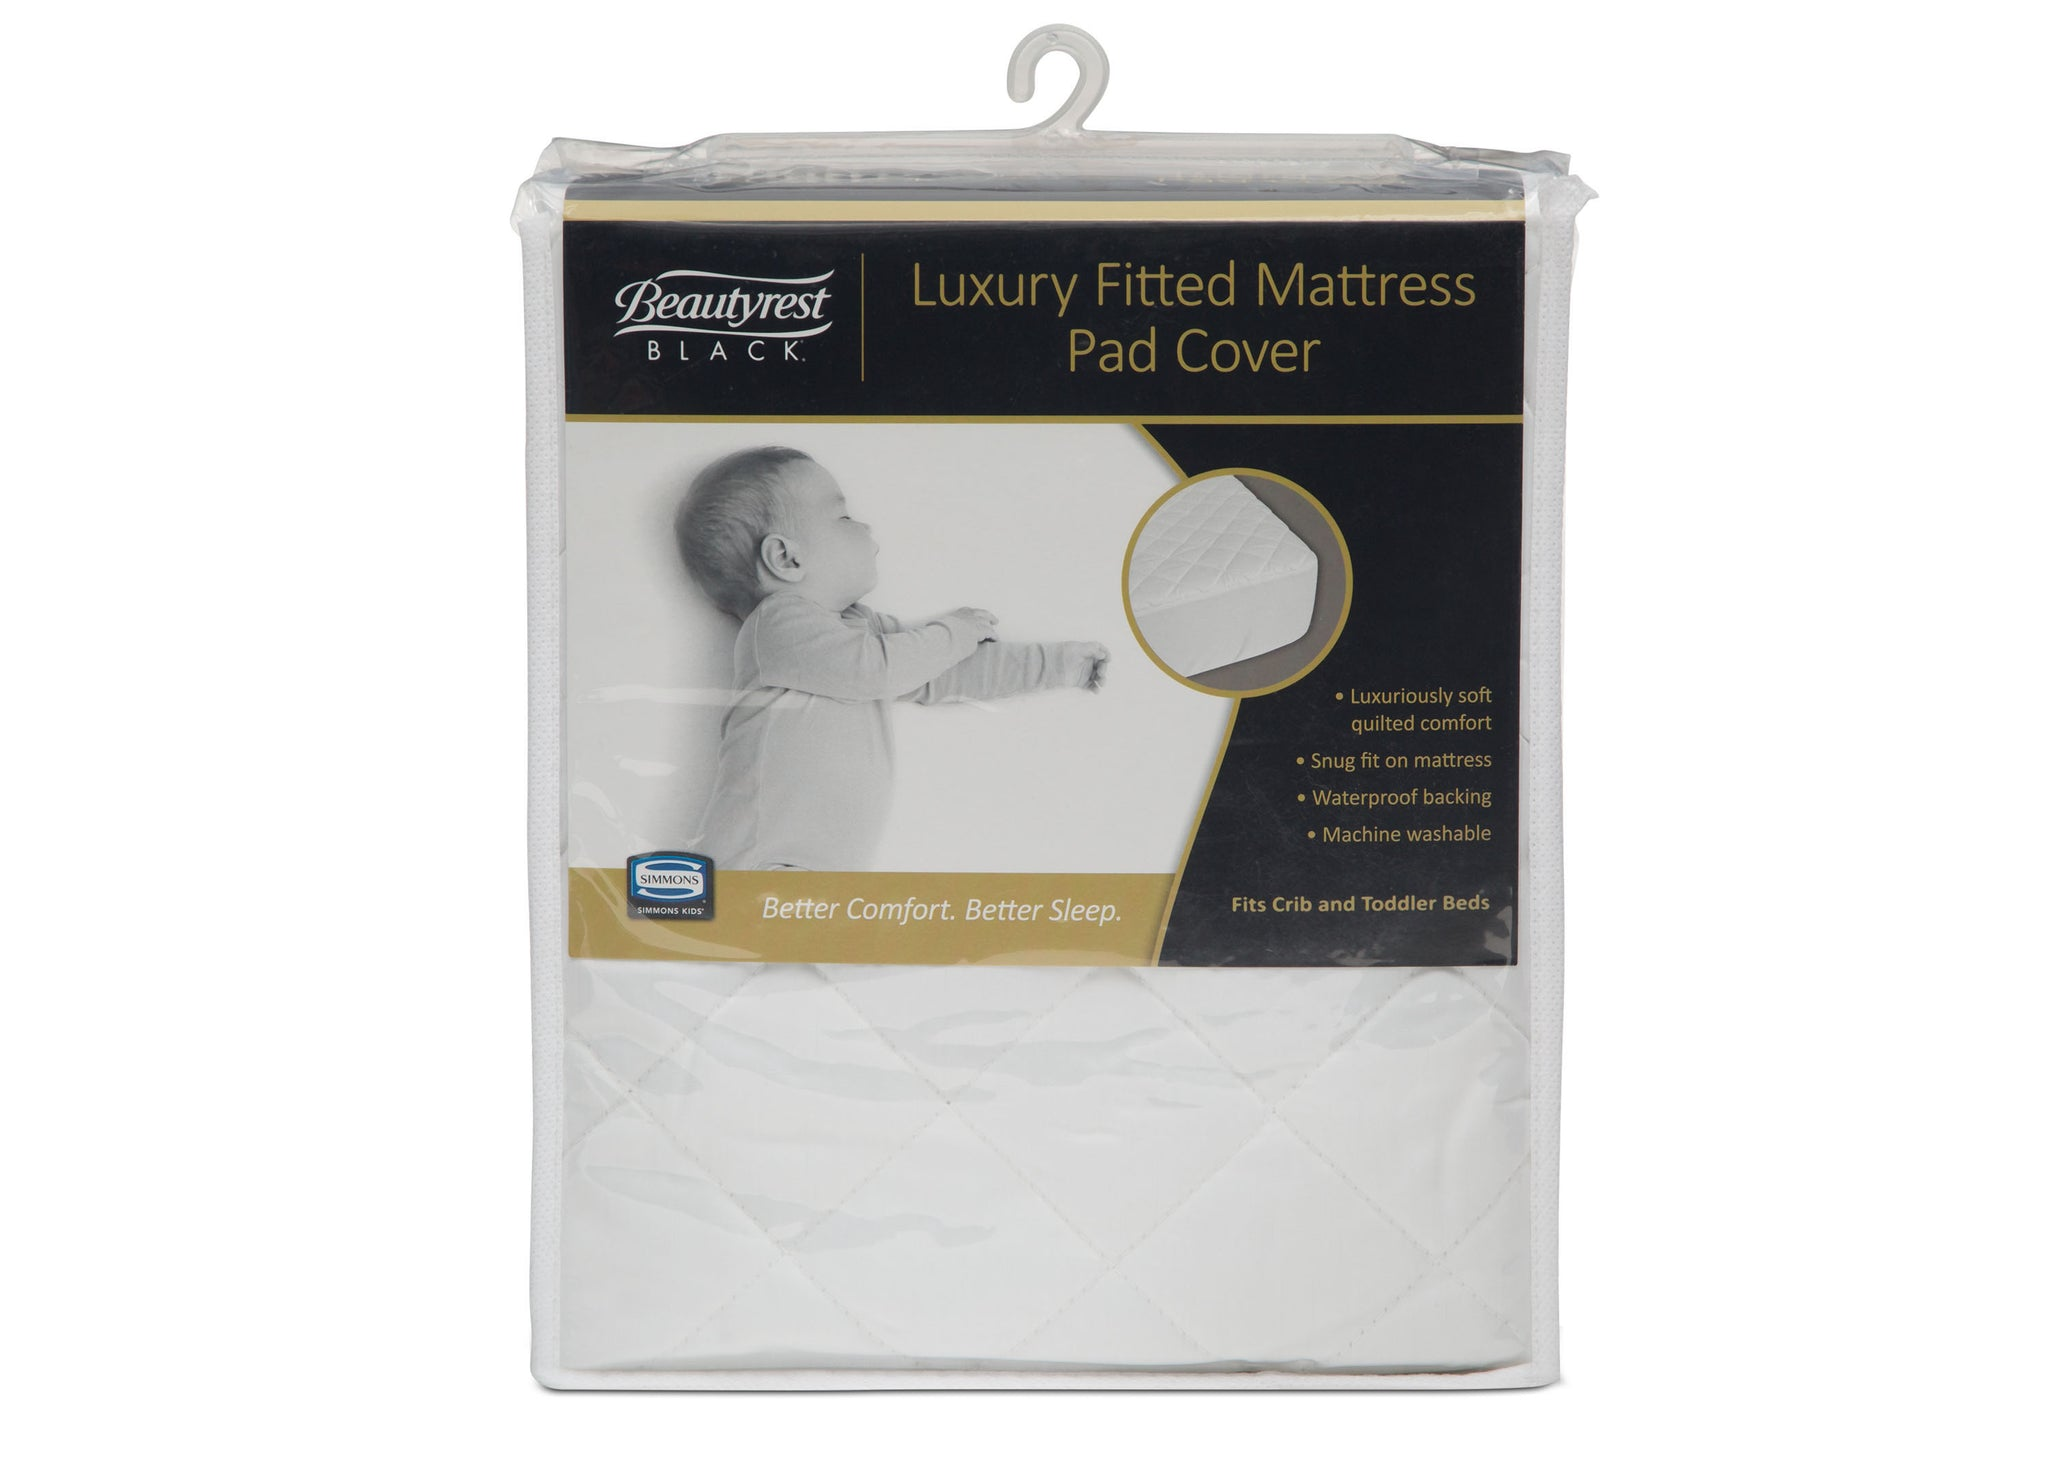 Beautyrest Black® Luxury Fitted Mattress Pad Cover Packaged View a1a